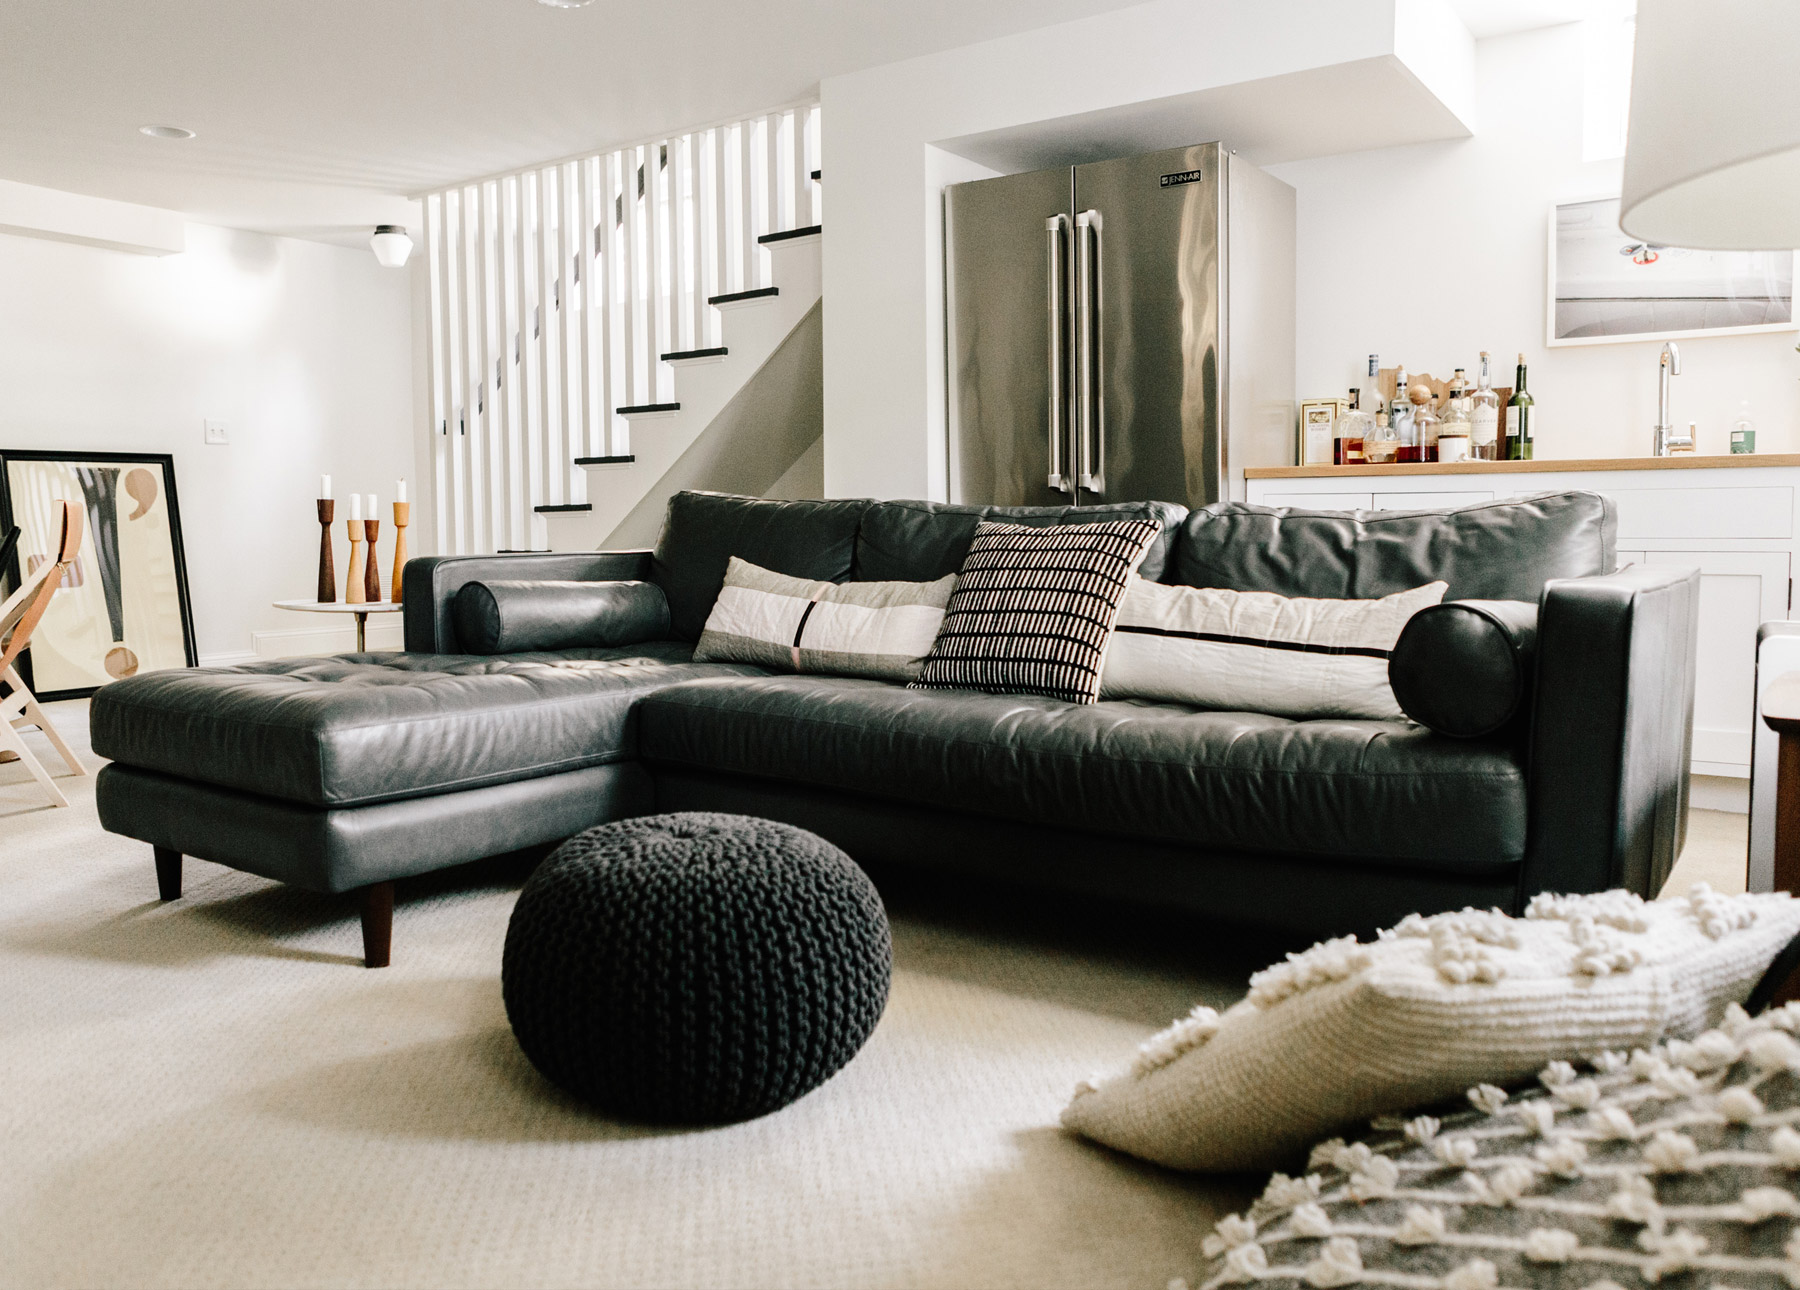 A gray leather sectional makes a basement suite look more cozy.